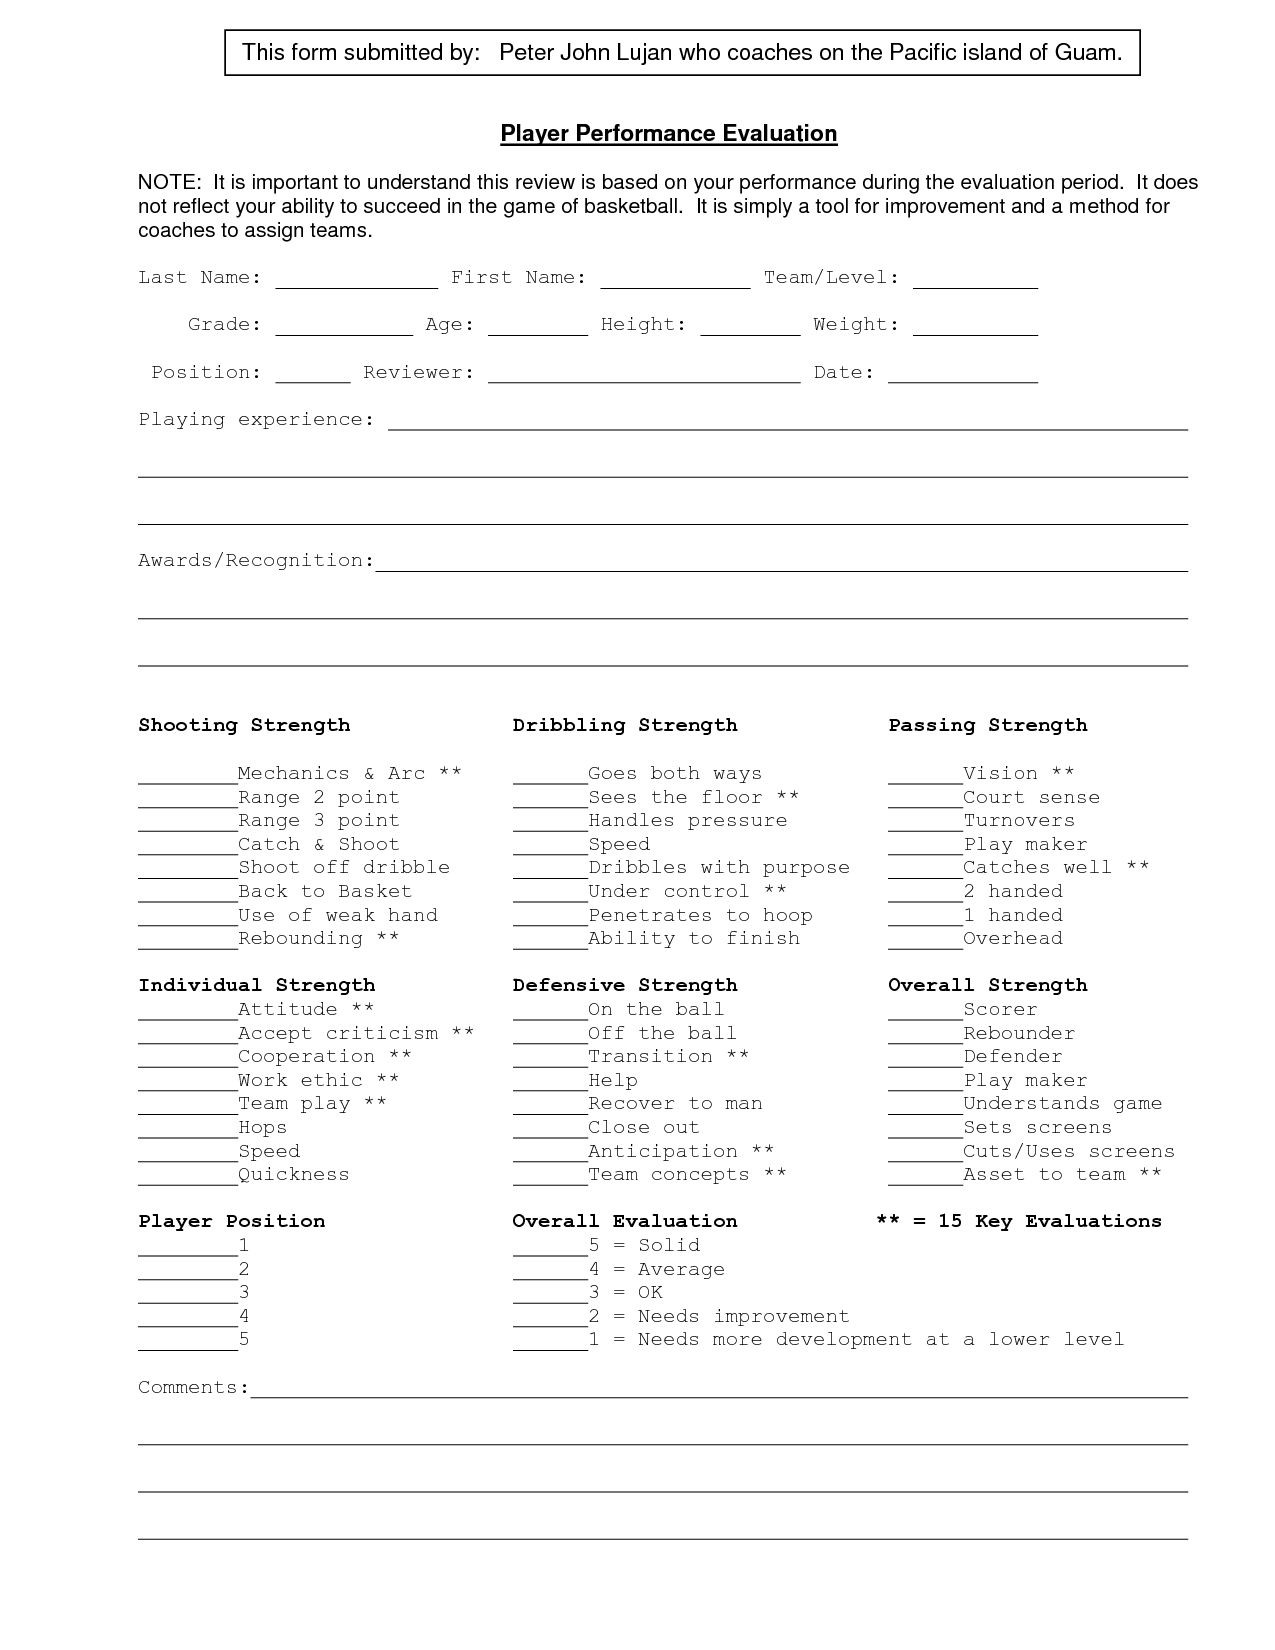 Image Result For Basketball Player Evaluation Template In Blank Hockey Practice Plan Template Best Template Ide In 2020 Evaluation Evaluation Form Basketball Players